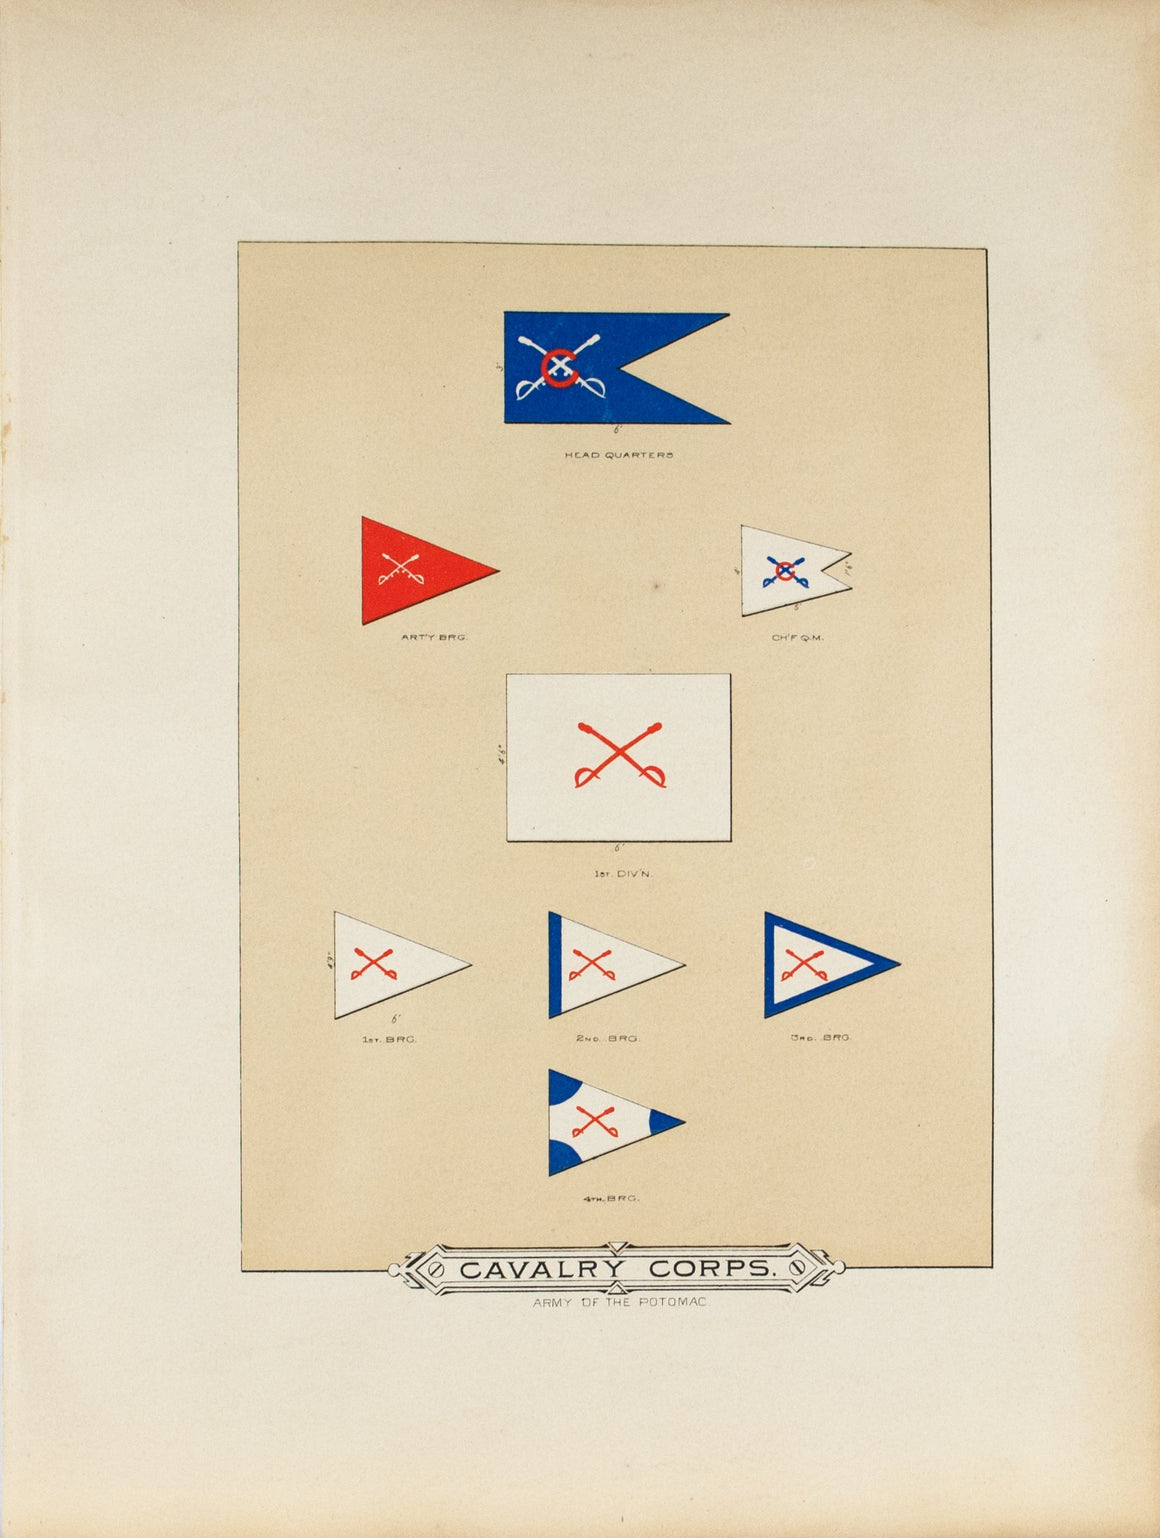 Cavalry Corps Antique Civil War Union Army Flag Print 1887 A